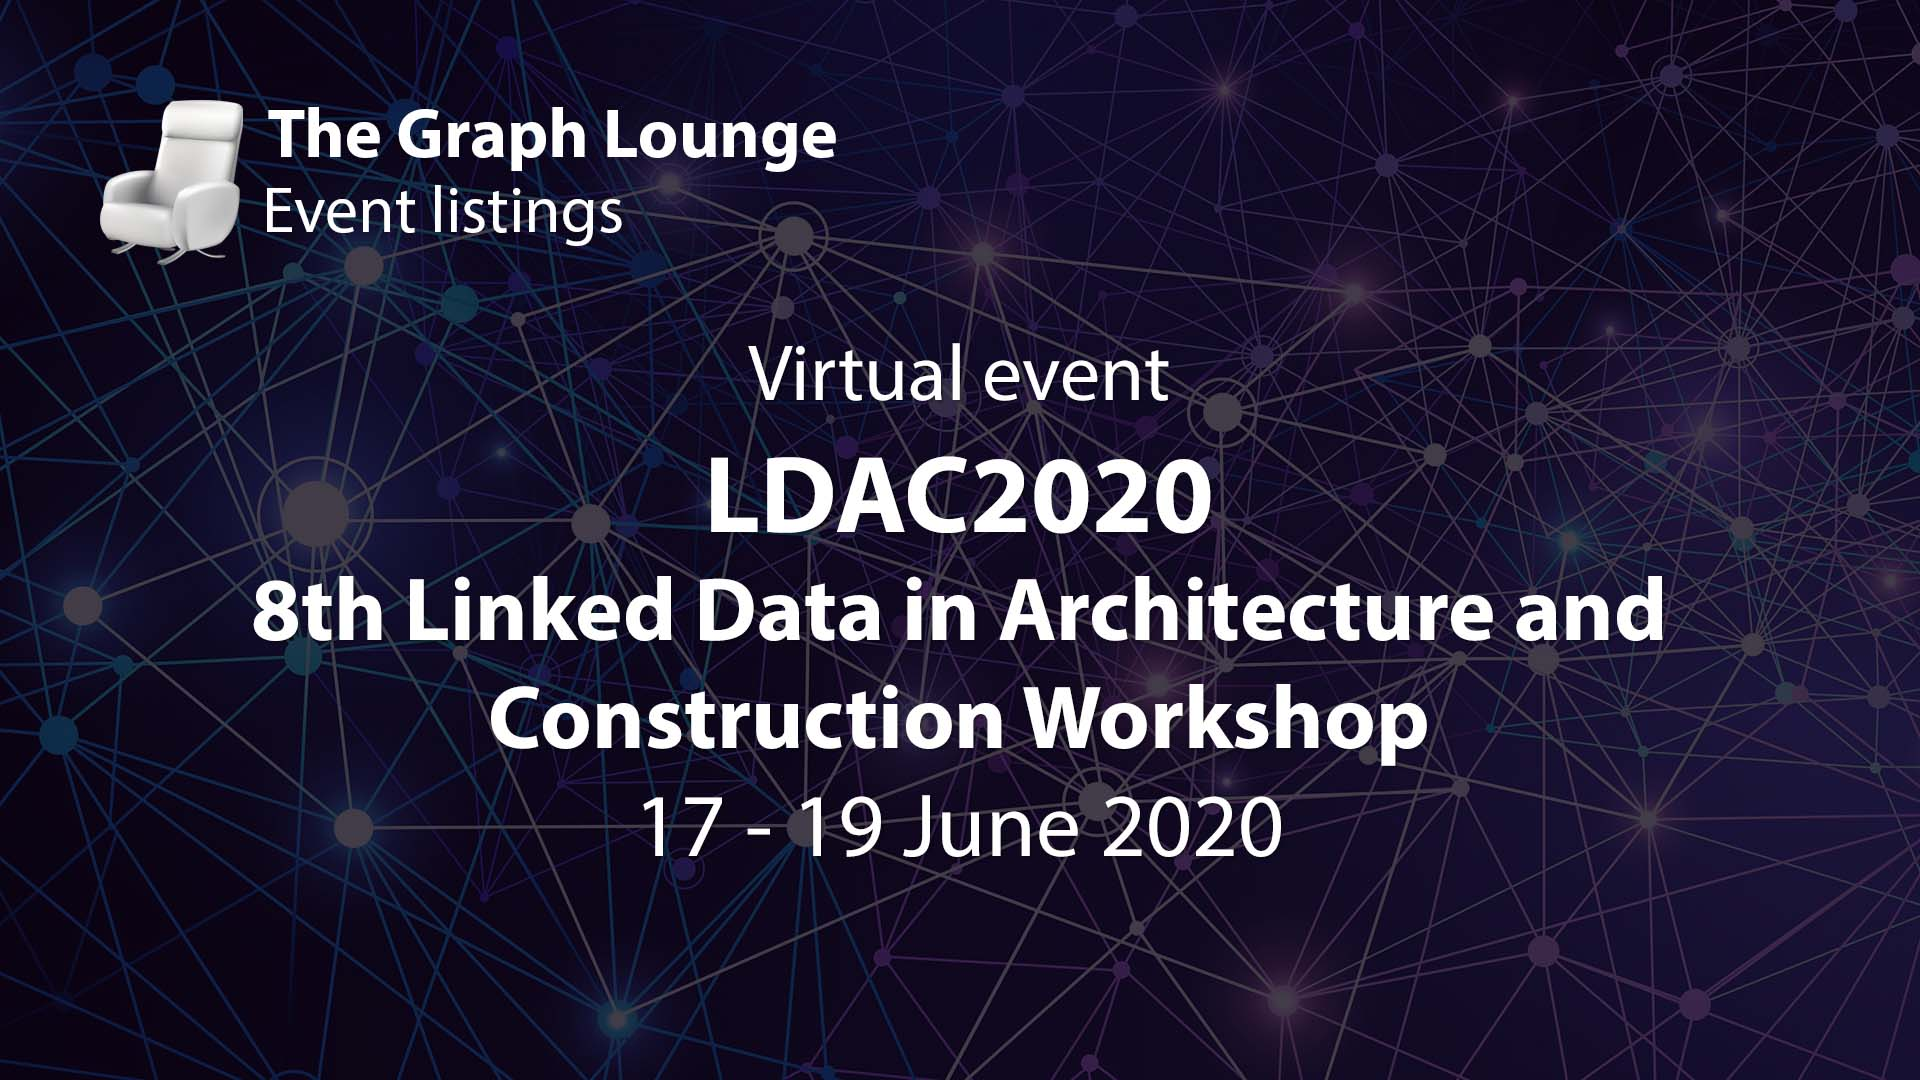 LDAC2020 (8th Linked Data in Architecture and Construction Workshop)